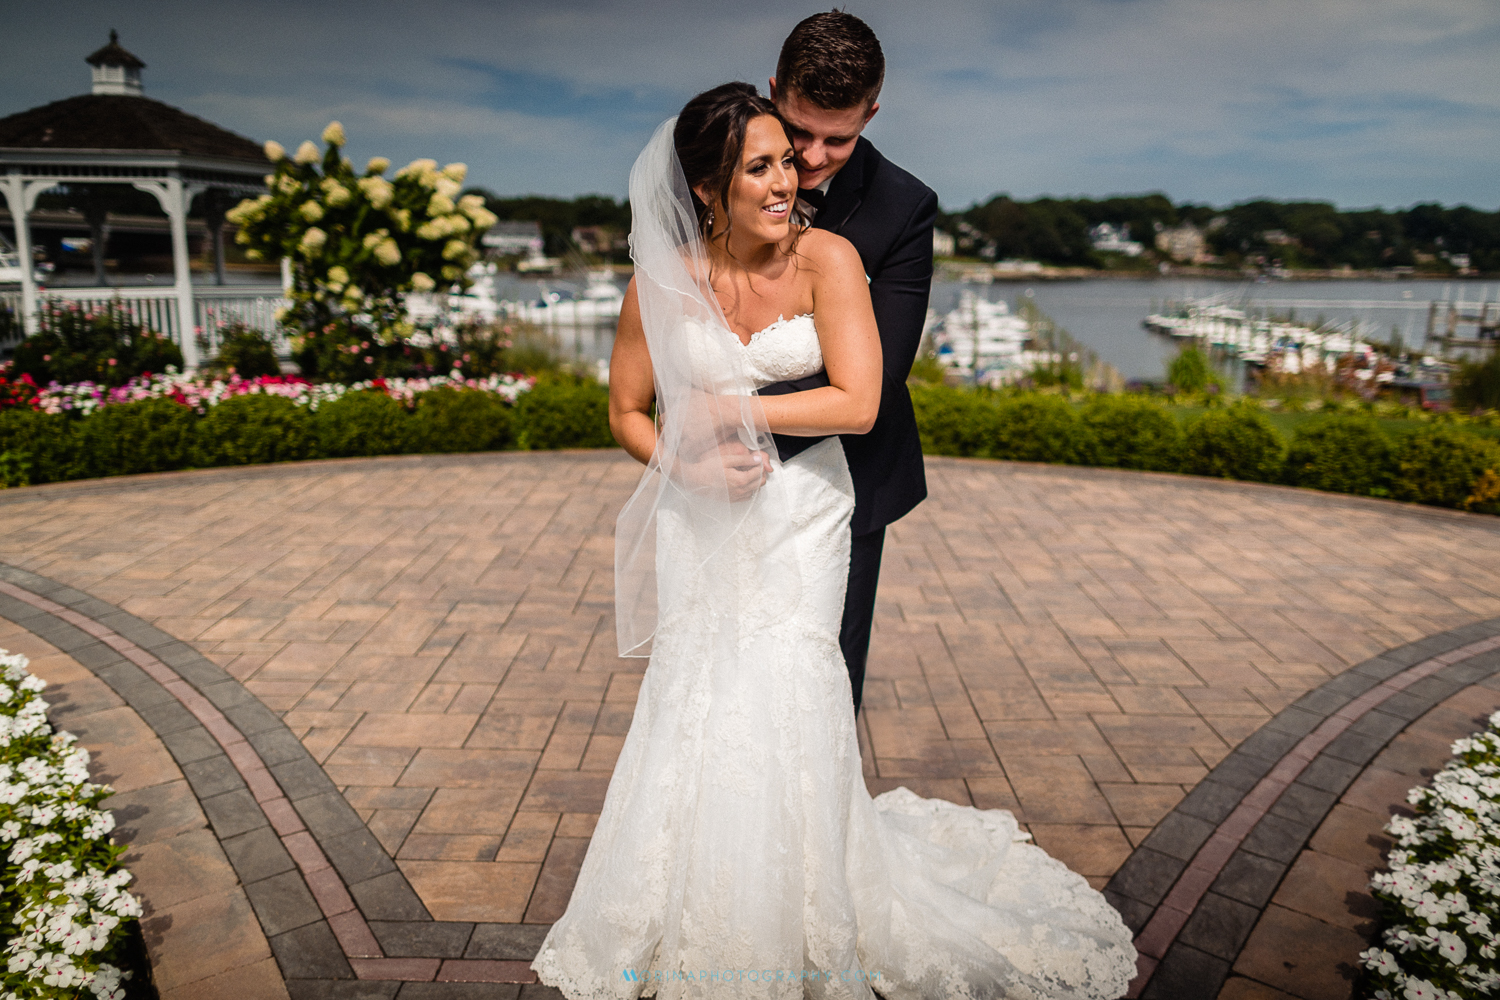 Amanda & Austin wedding at Crystal Point Yacht Club 37.jpg